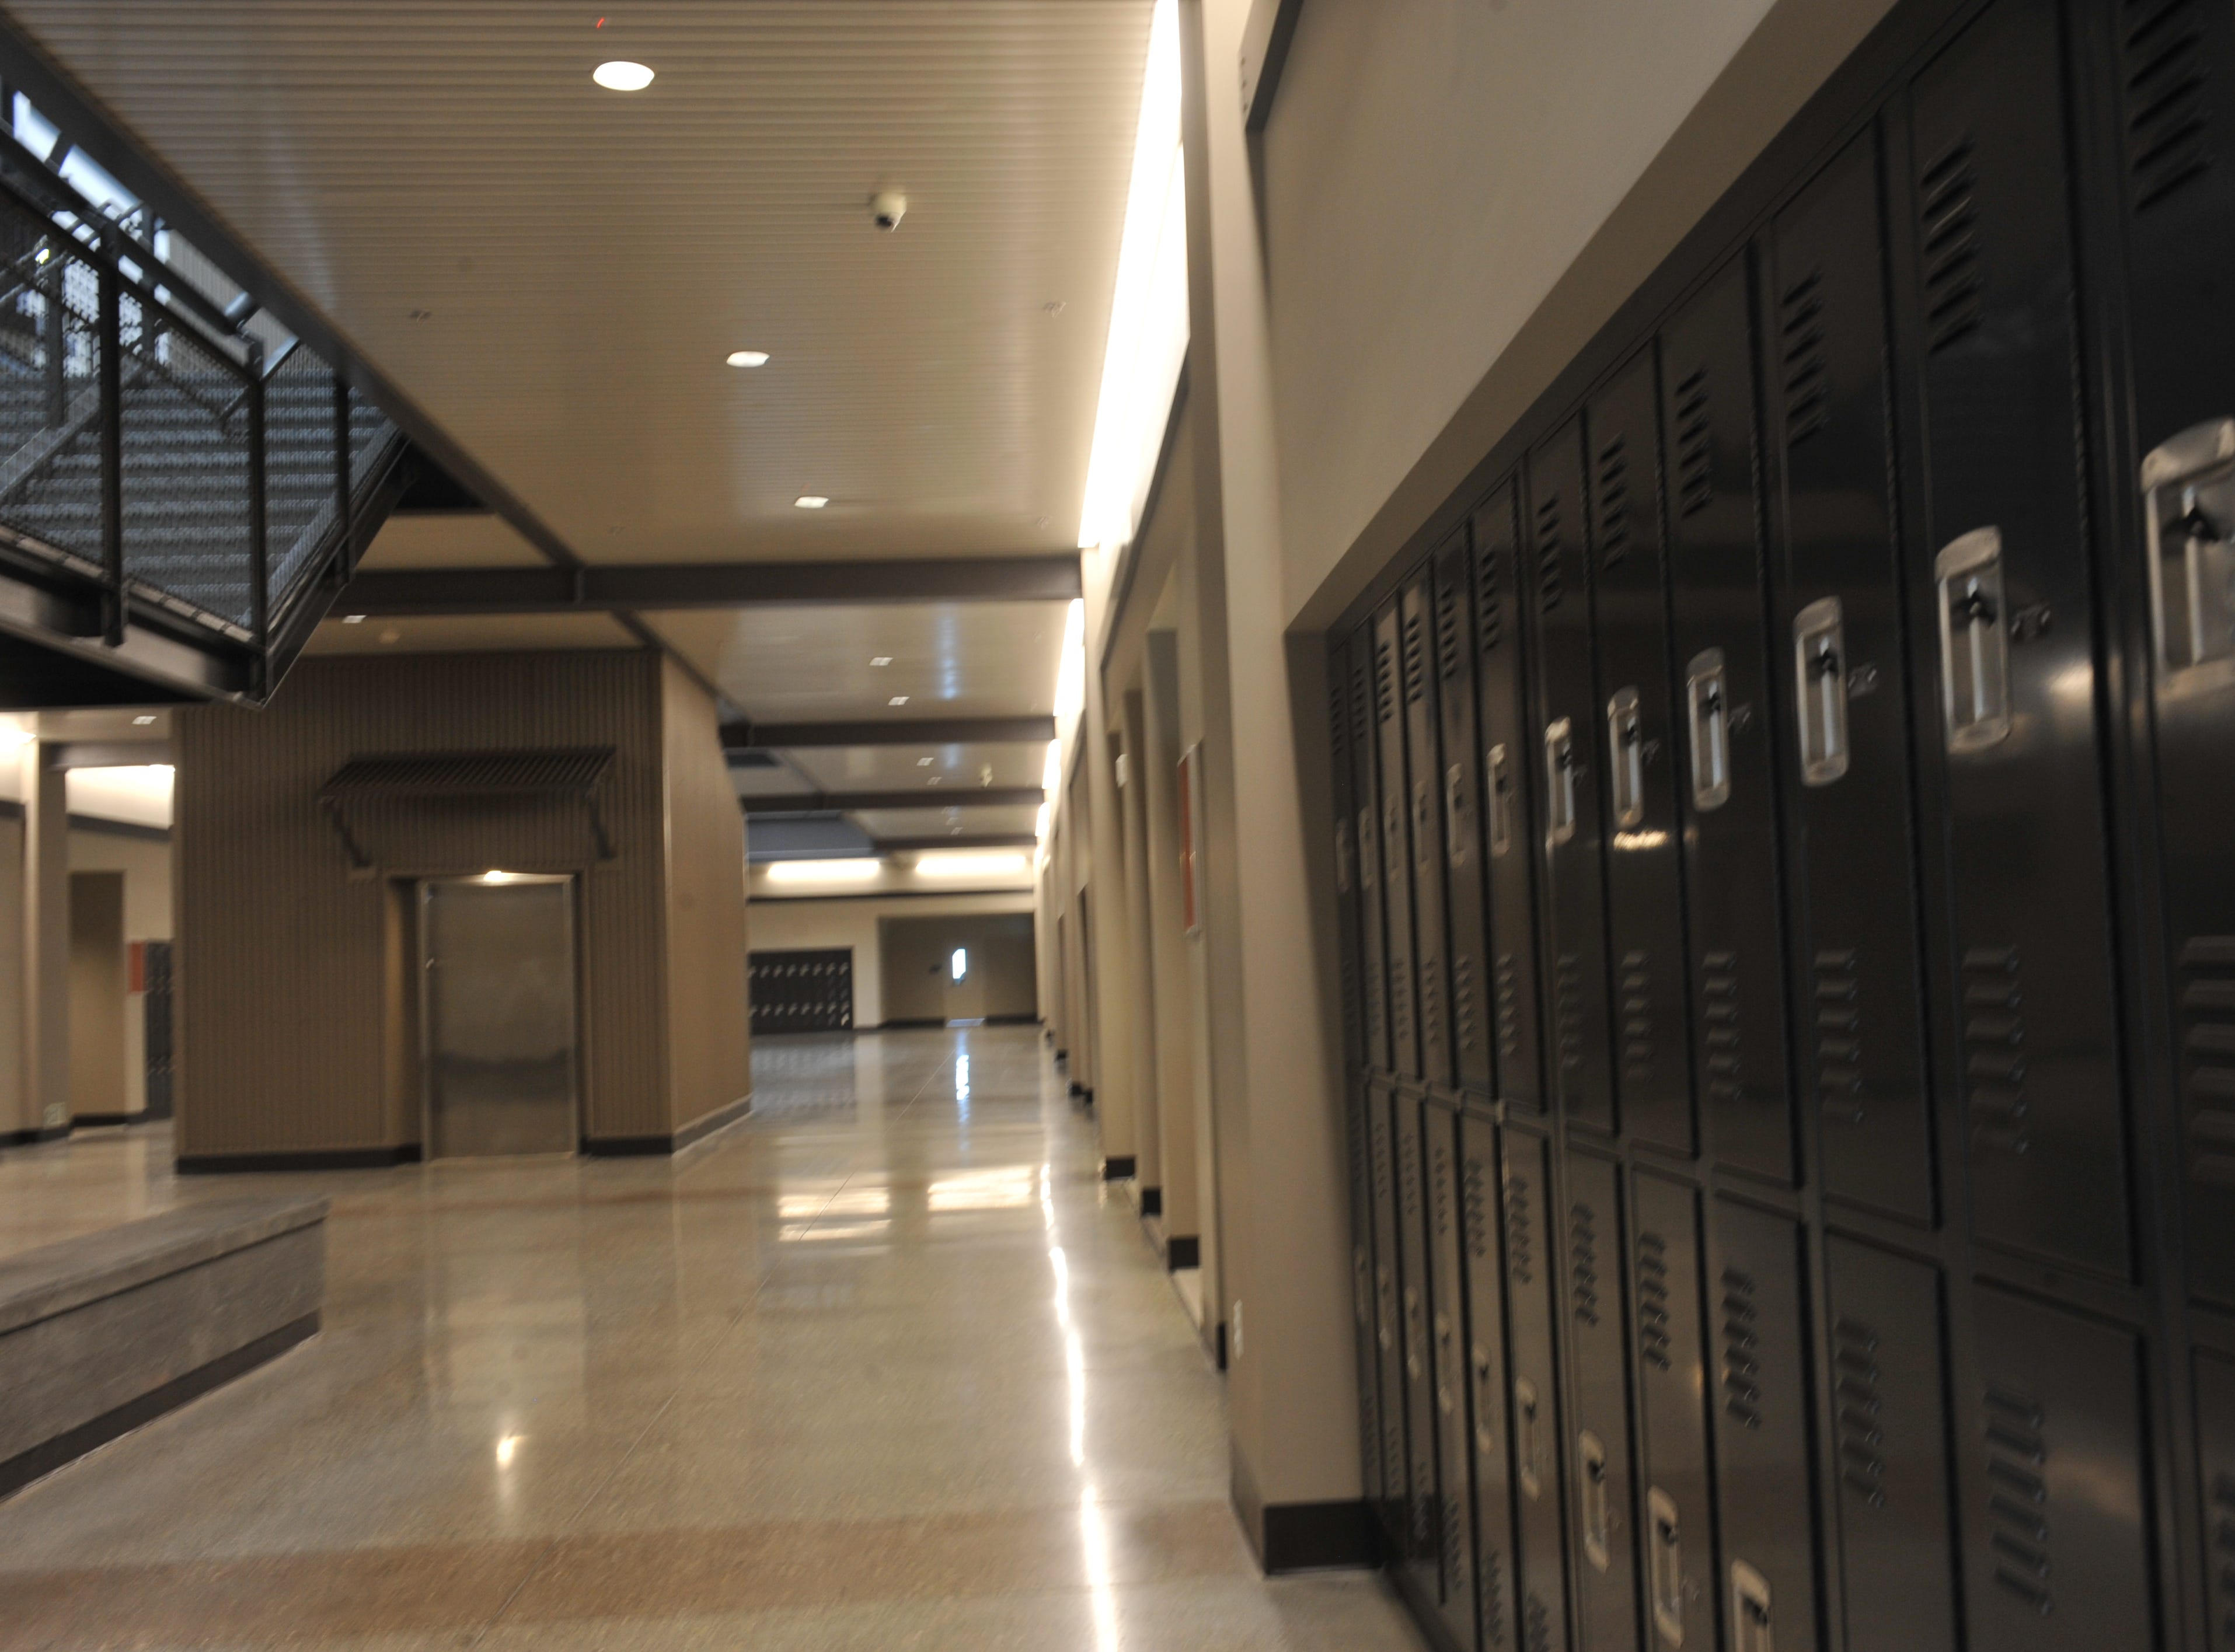 Lockers at Rancho San Juan High School, which is set to open in fall 2019.